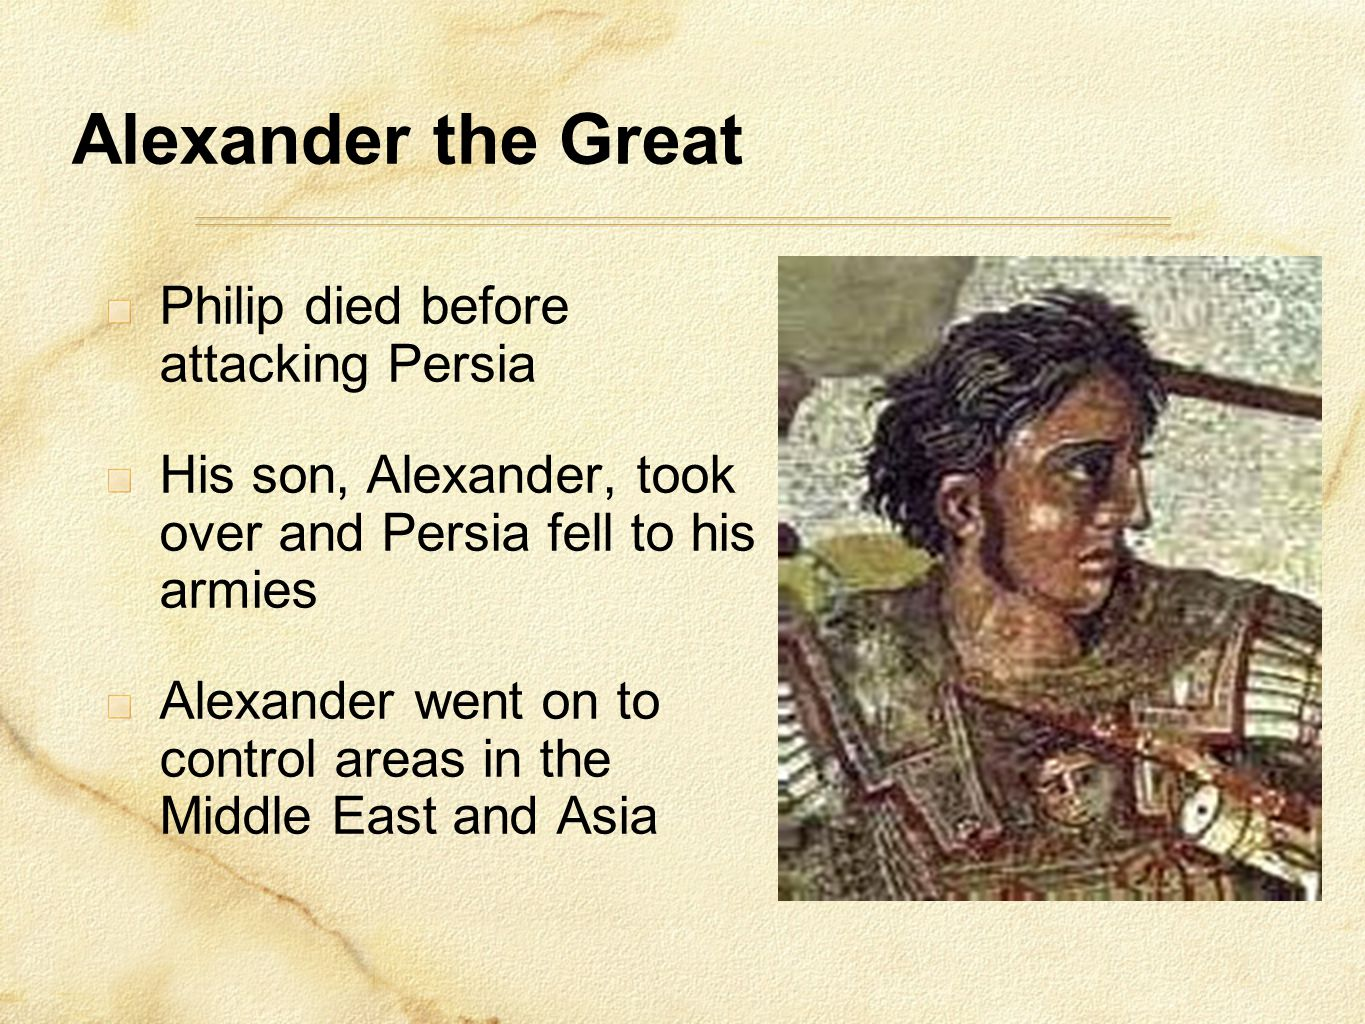 Alexander the Great Philip died before attacking Persia His son, Alexander, took over and Persia fell to his armies Alexander went on to control areas